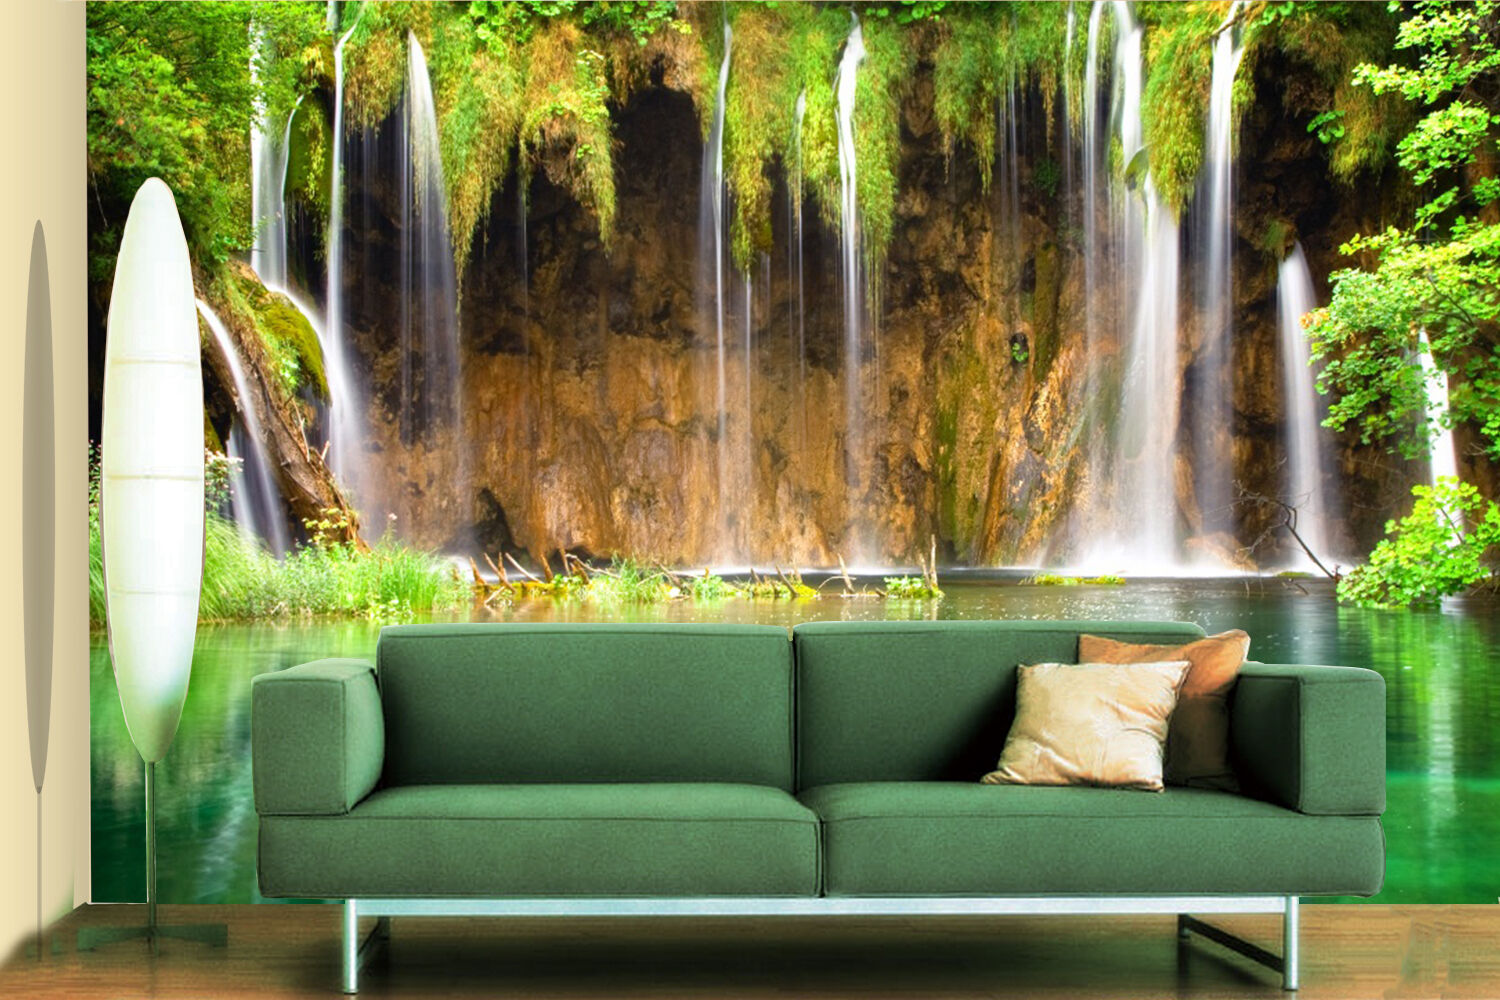 3D Lake, woods 466 Wall Paper Print Wall Decal Deco Indoor Wall Murals